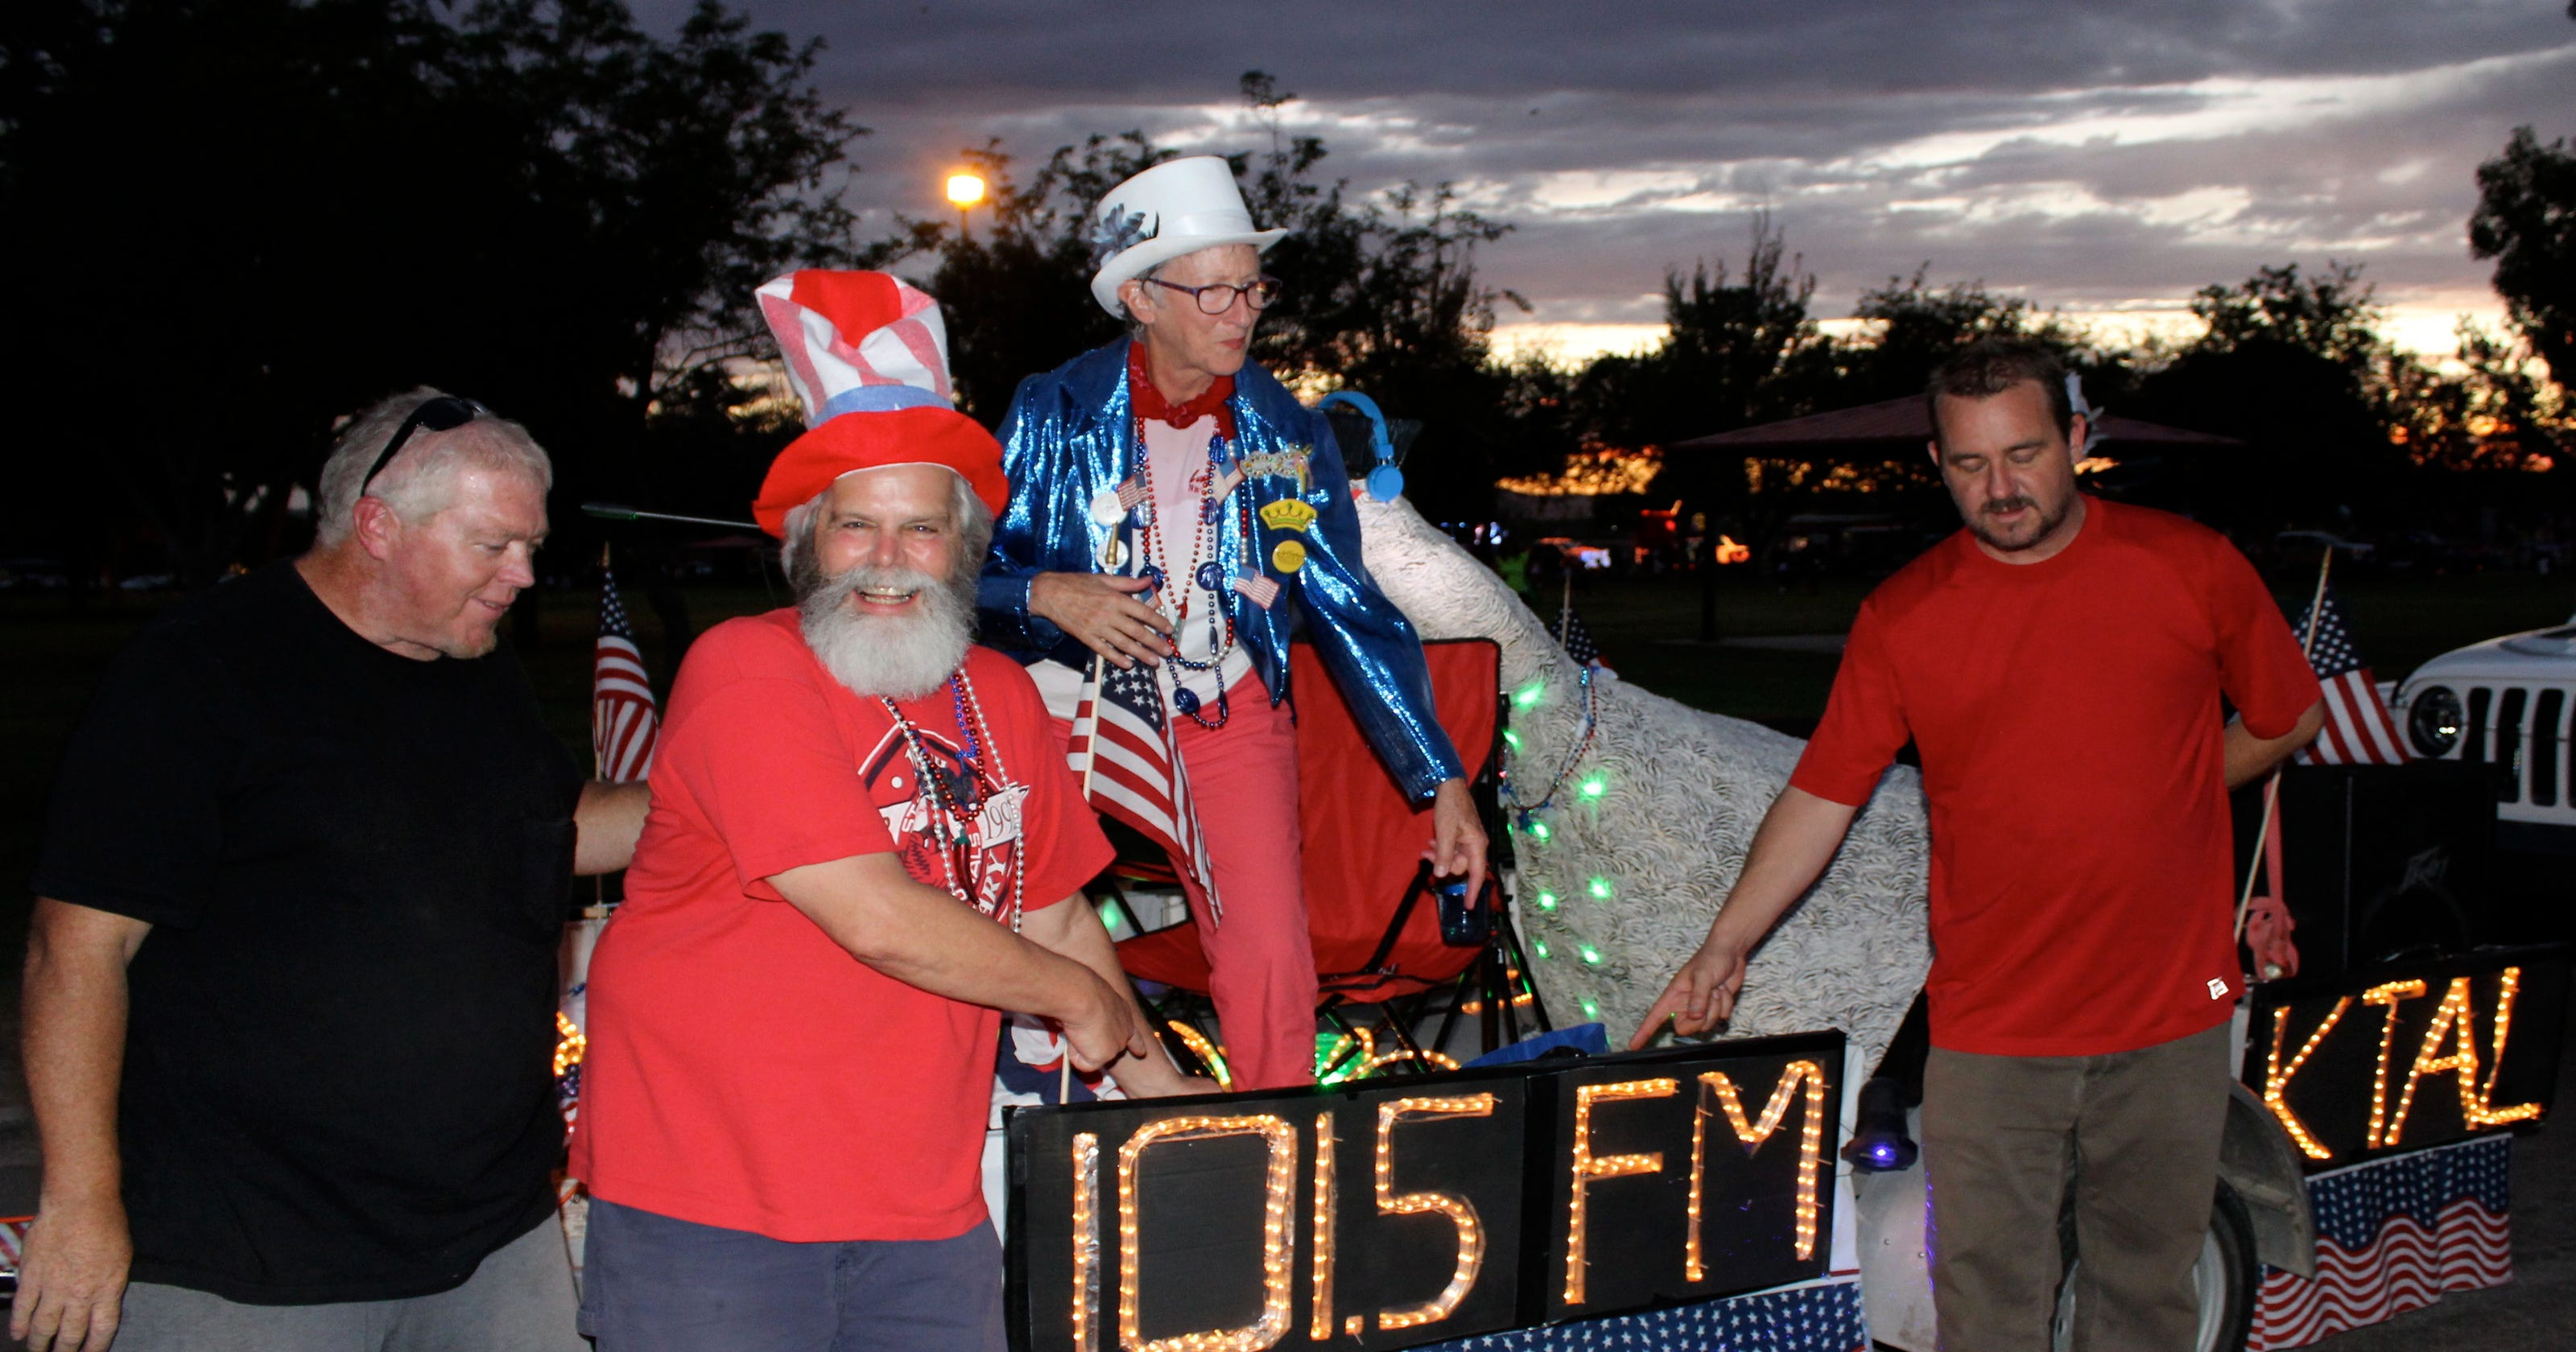 Community radio station KTAL-FM participates in Electric